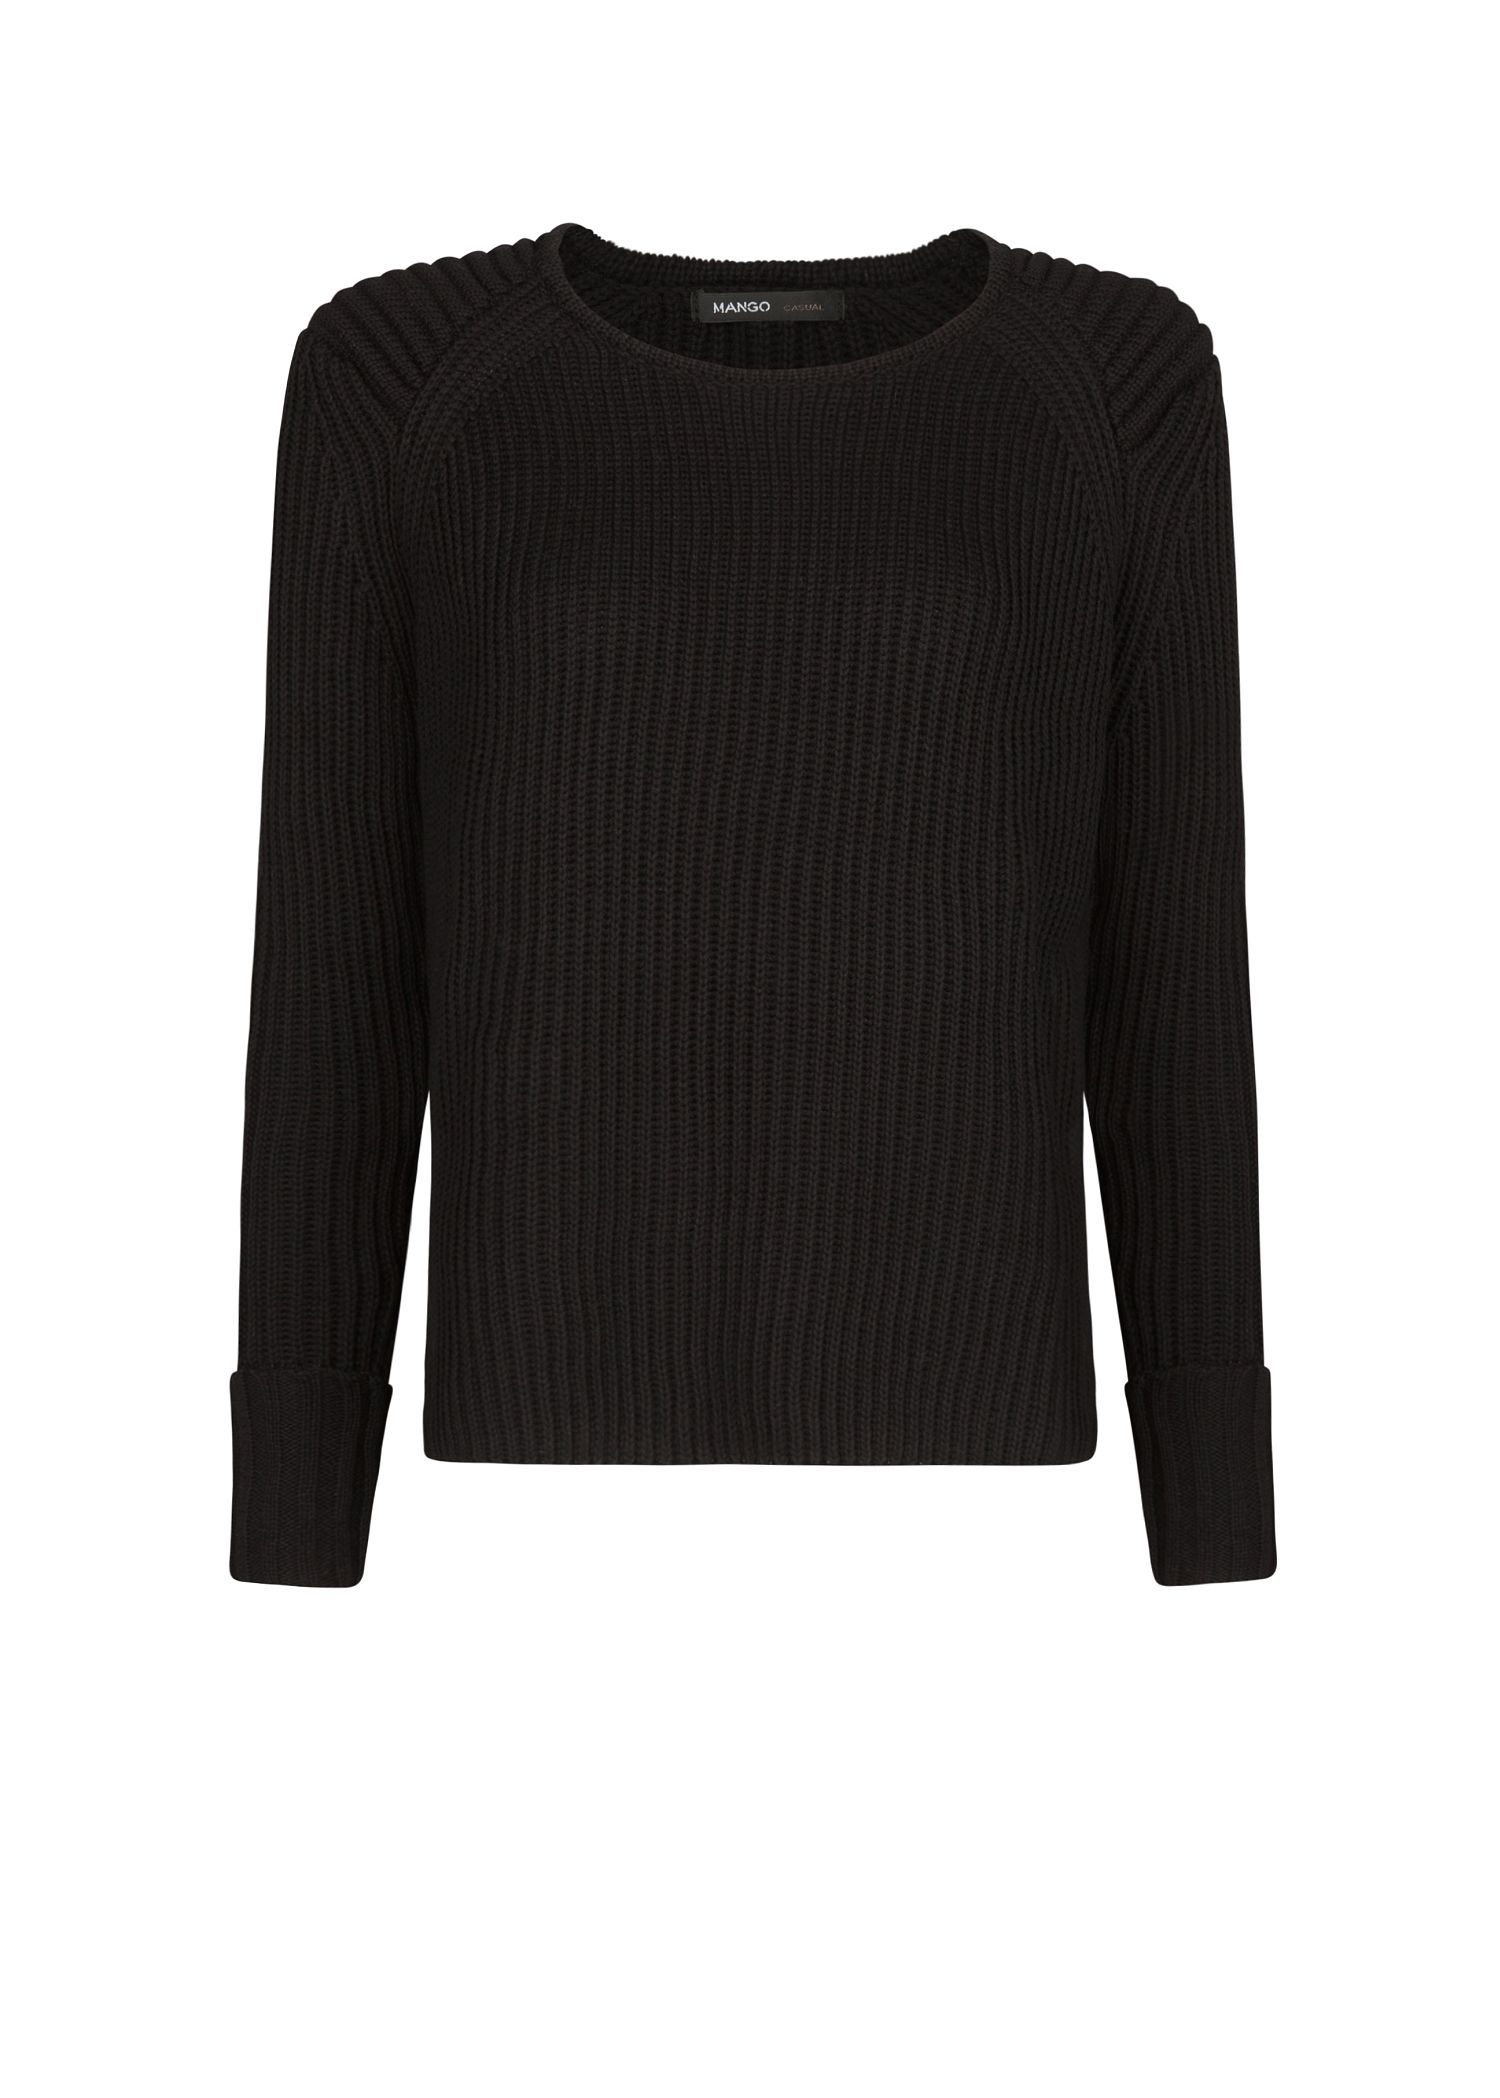 Mango Ribbed Sweater in Black | Lyst